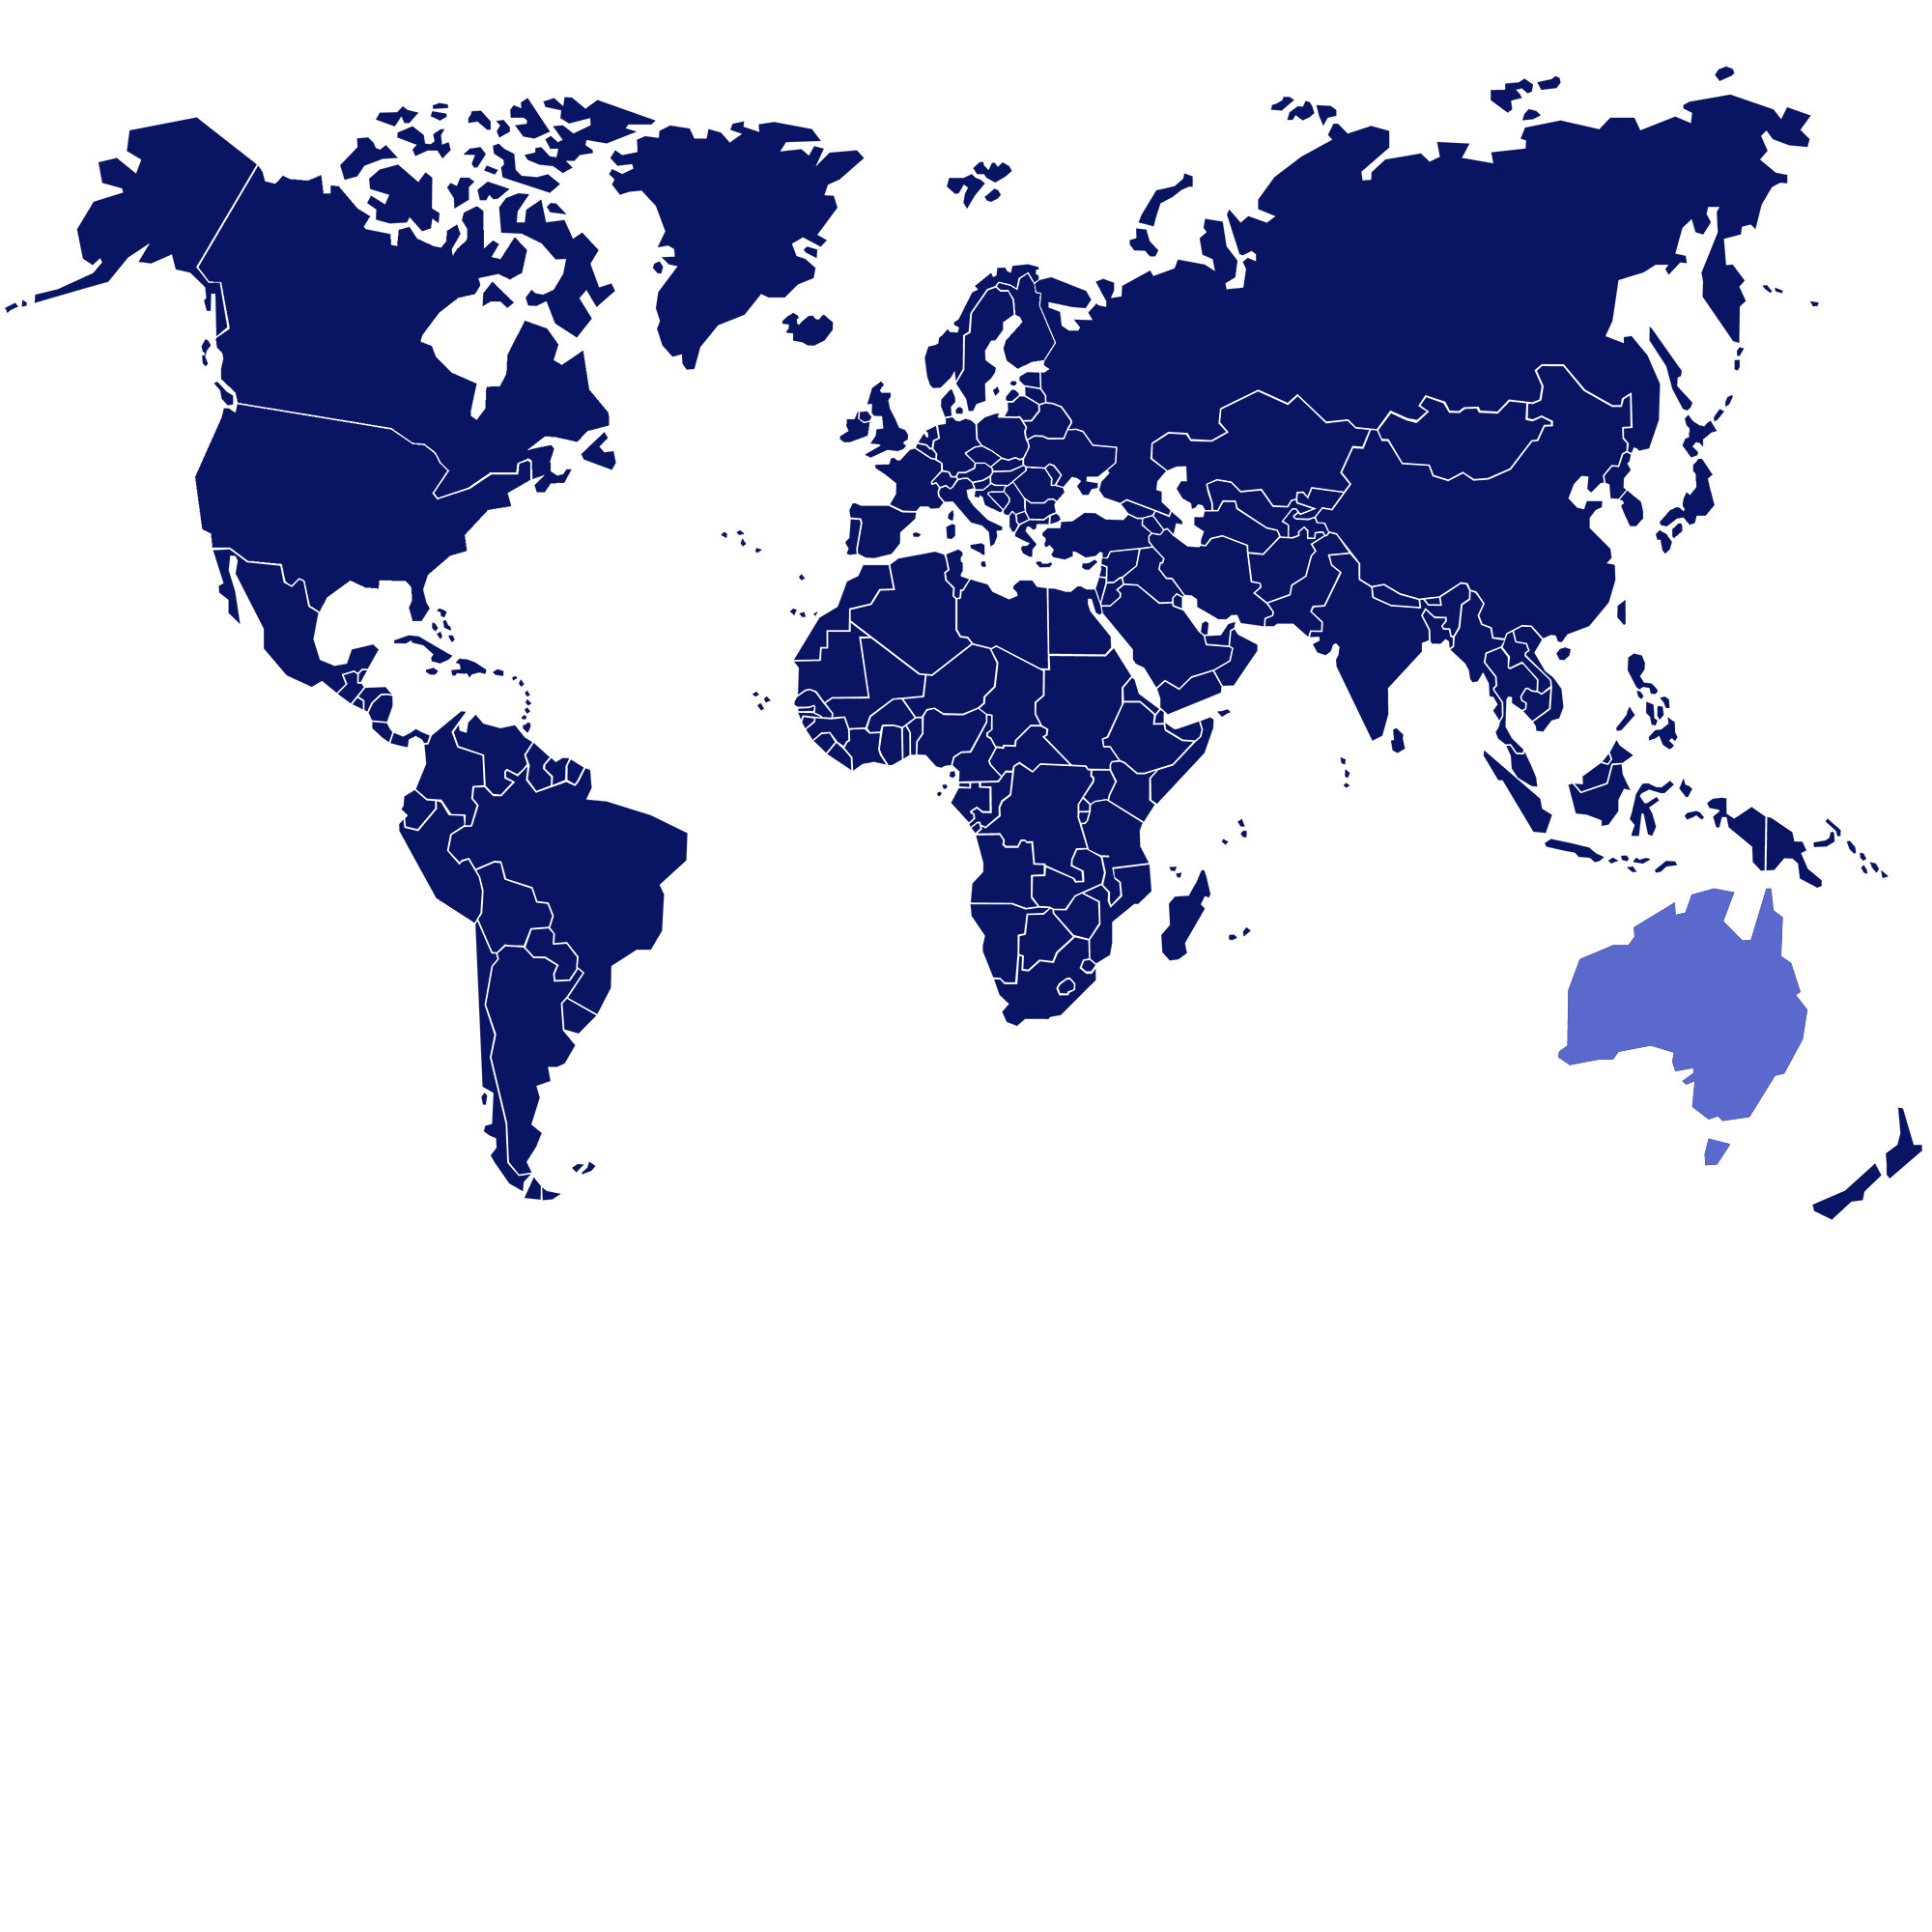 Richard Clayderman Australia Tour